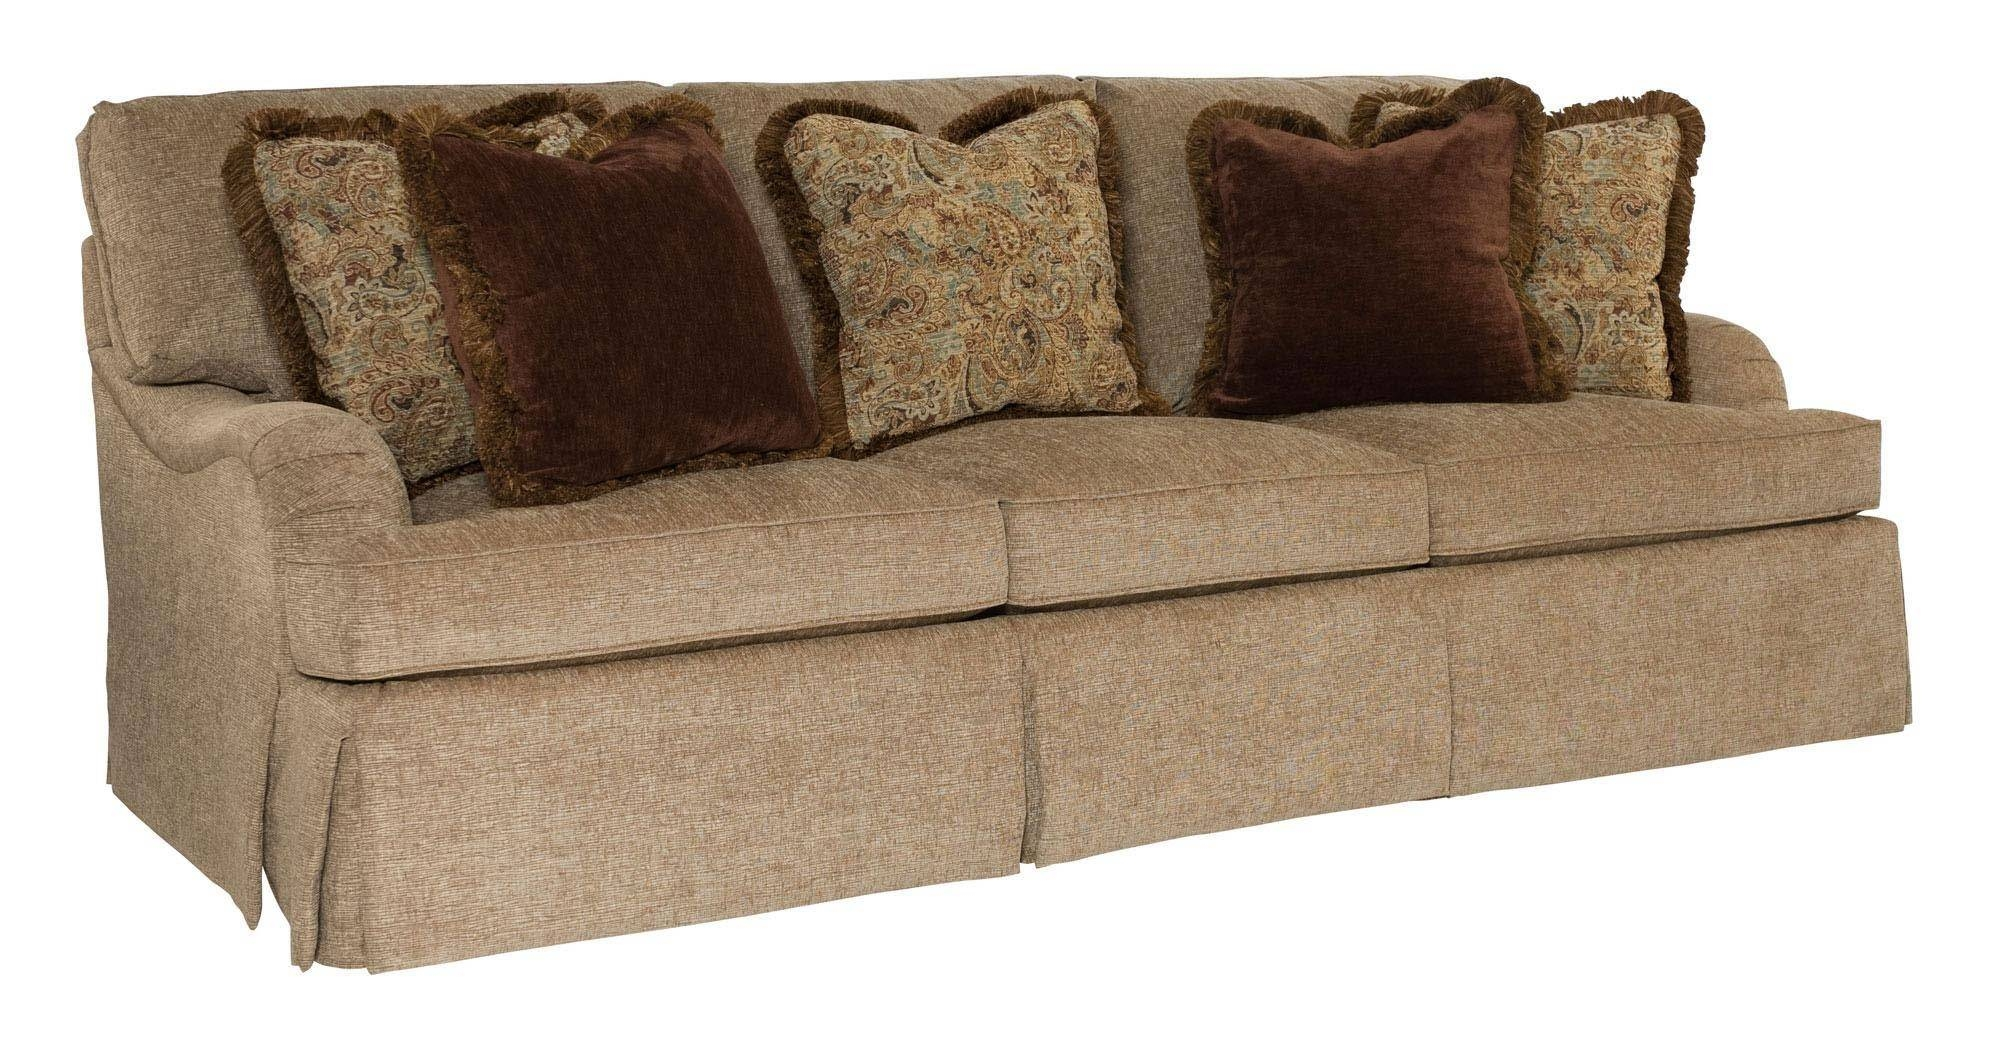 20+ Choices Of Slumberland Sofas | Sofa Ideas inside Slumberland Couches (Image 6 of 15)